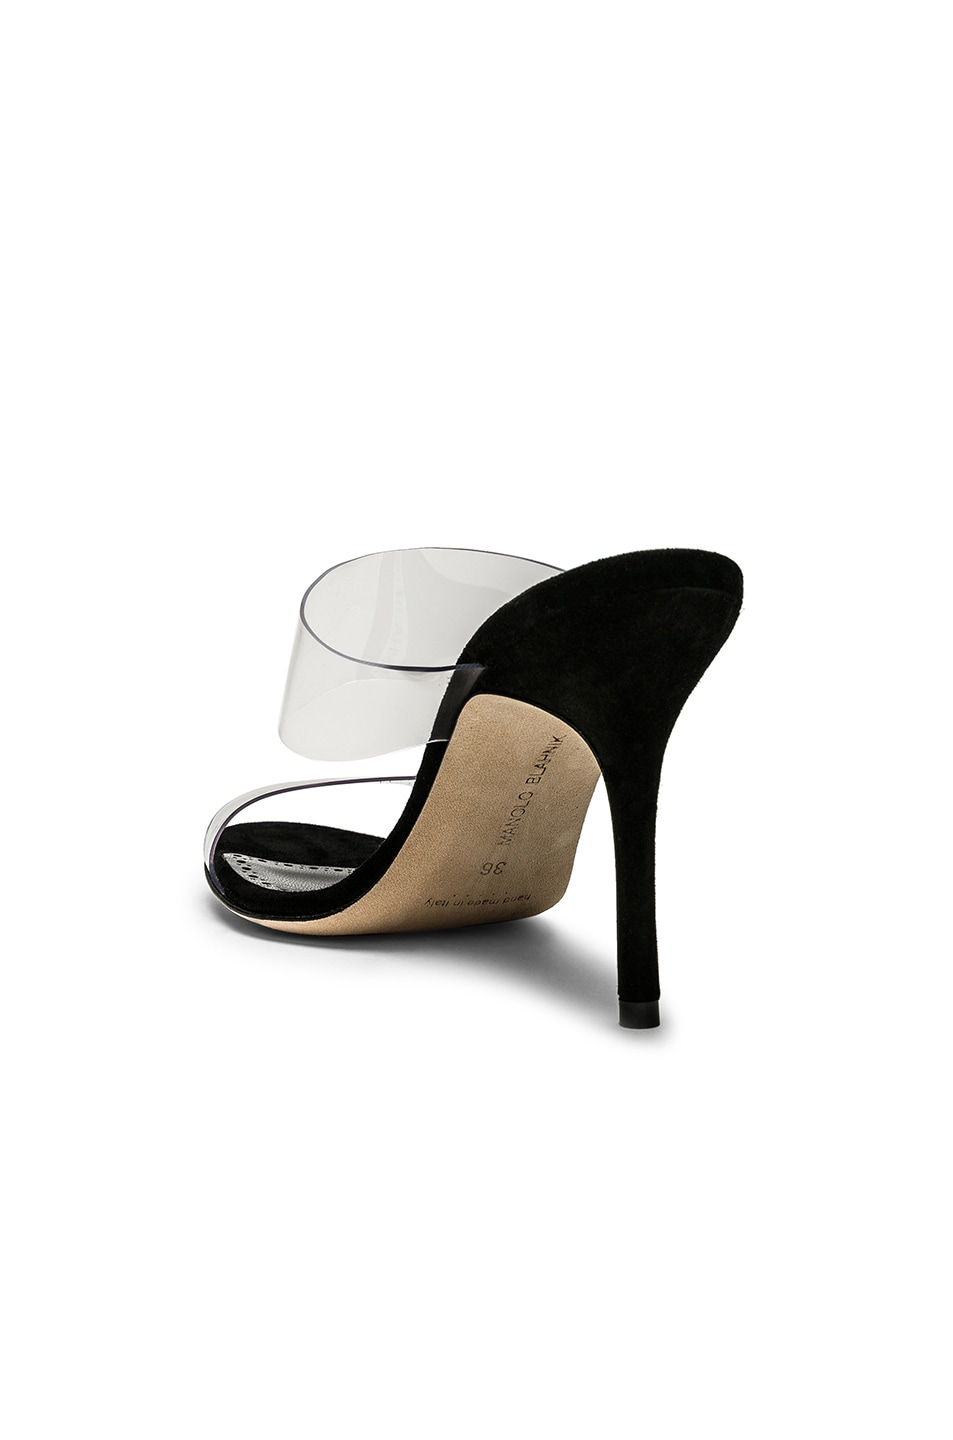 Image 3 of Manolo Blahnik PVC Scolto 90 Sandal in Black